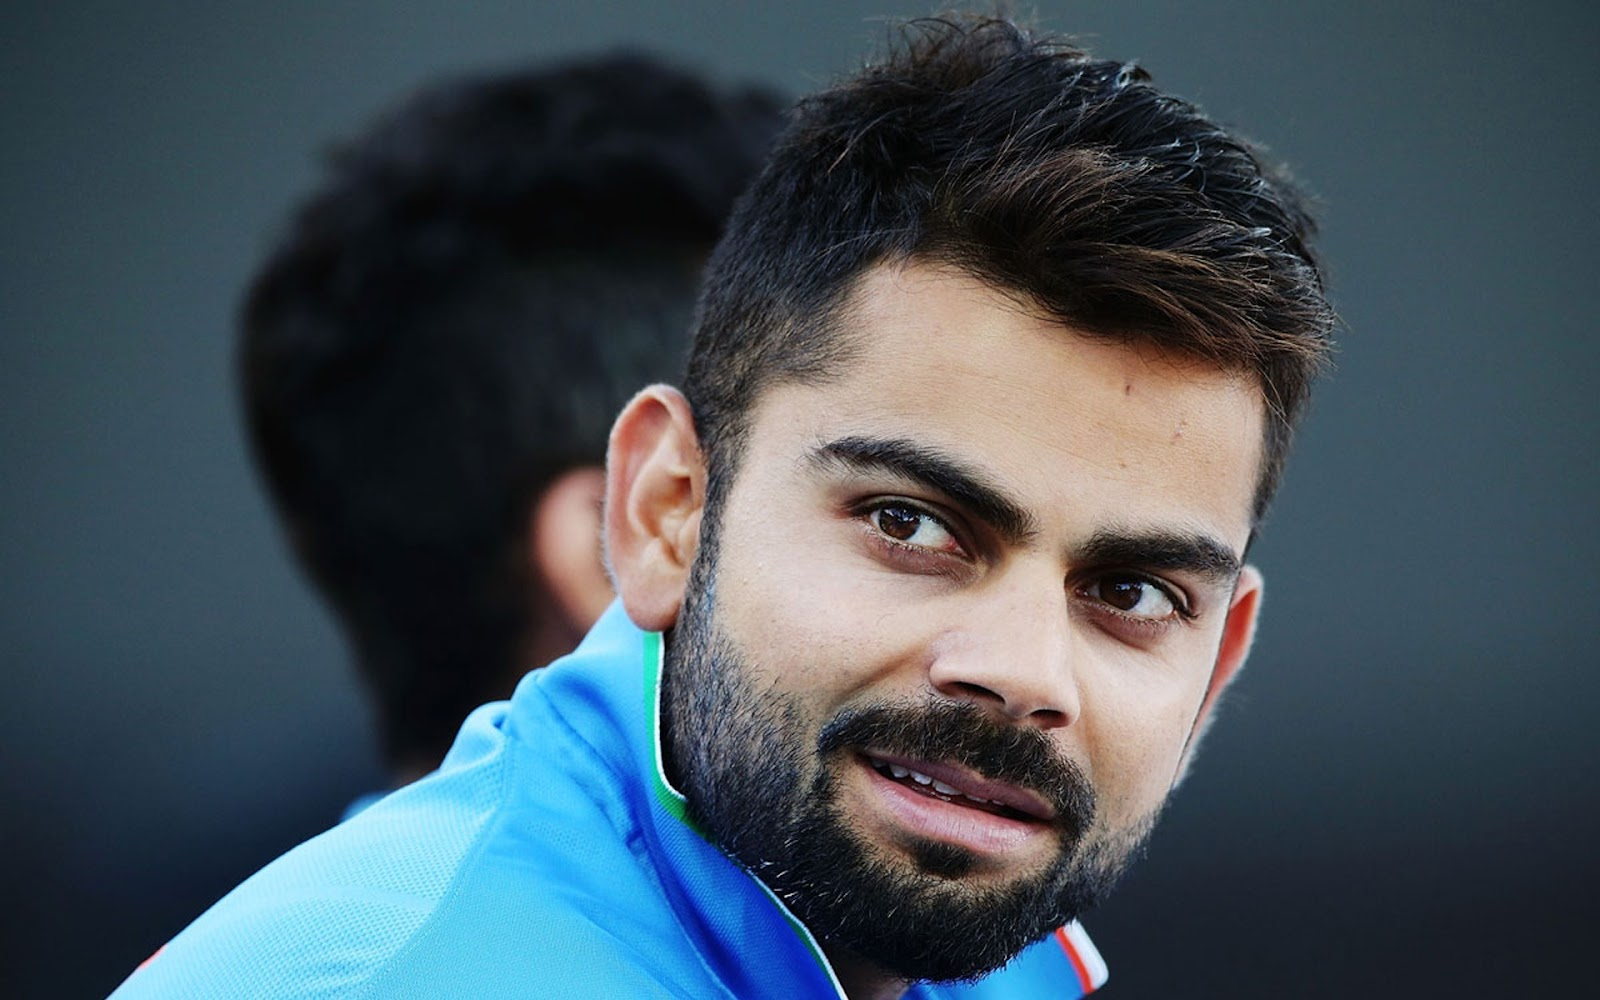 Virat Kohli Hd Wallpaper Latestwallpaper99